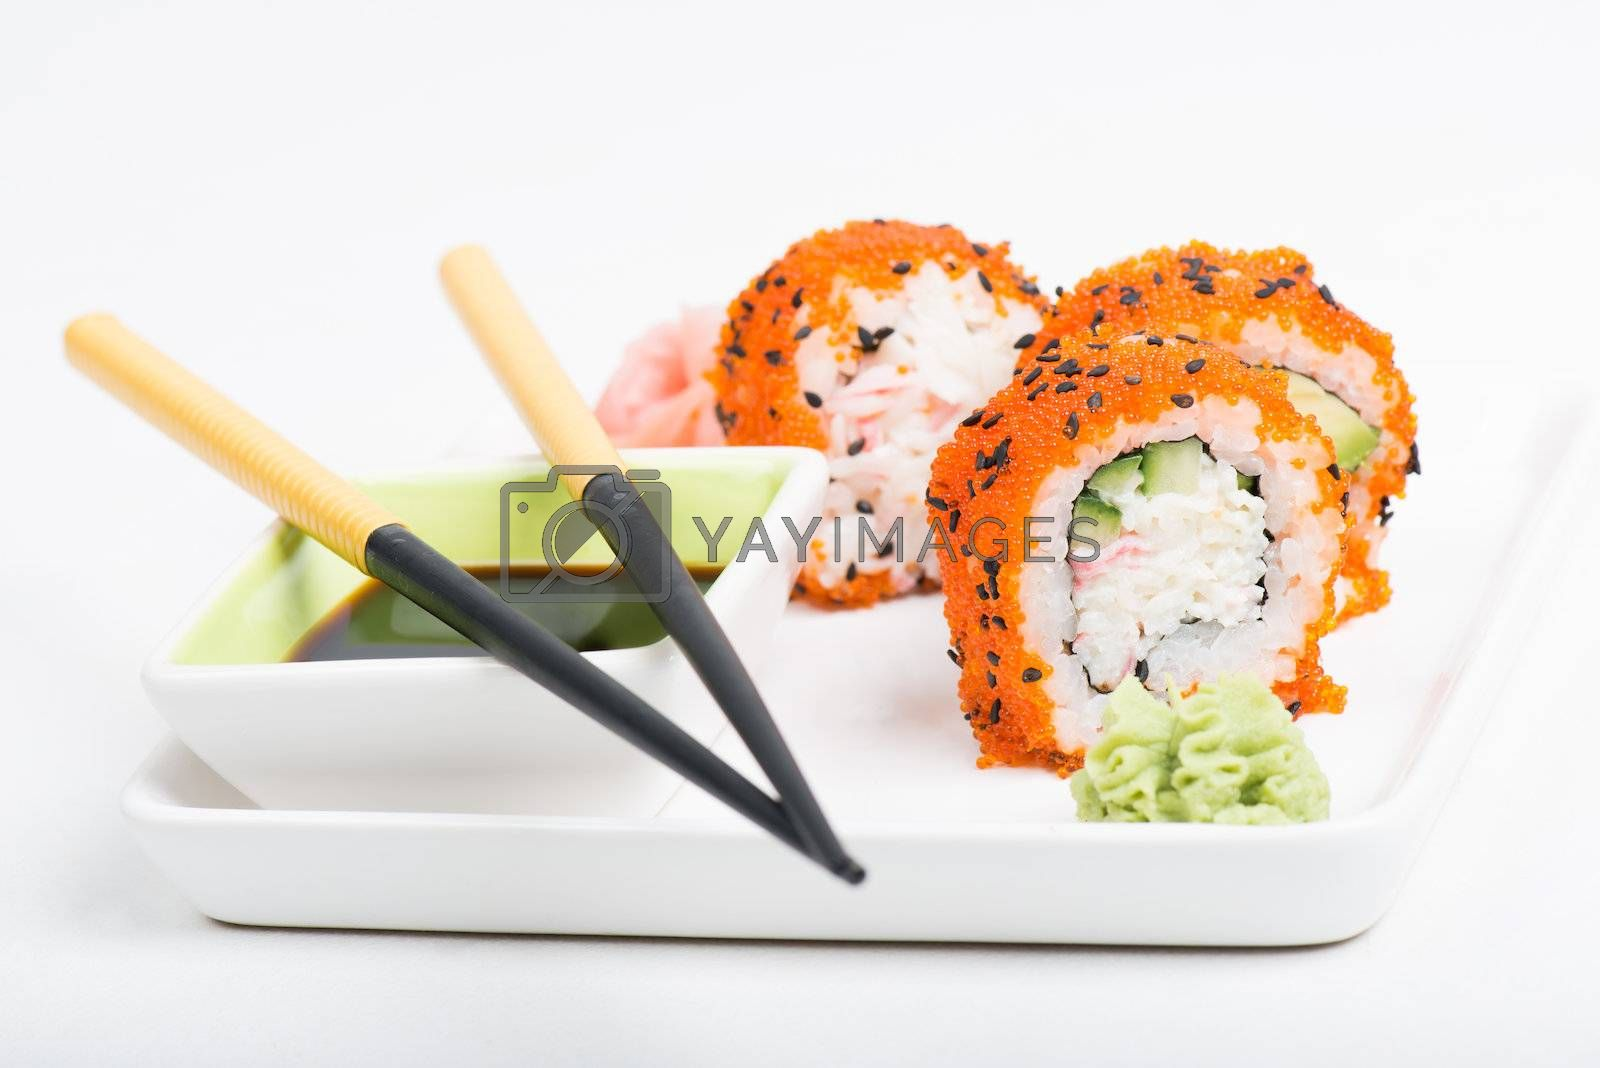 Chopsticks and sushi on the plate, light background